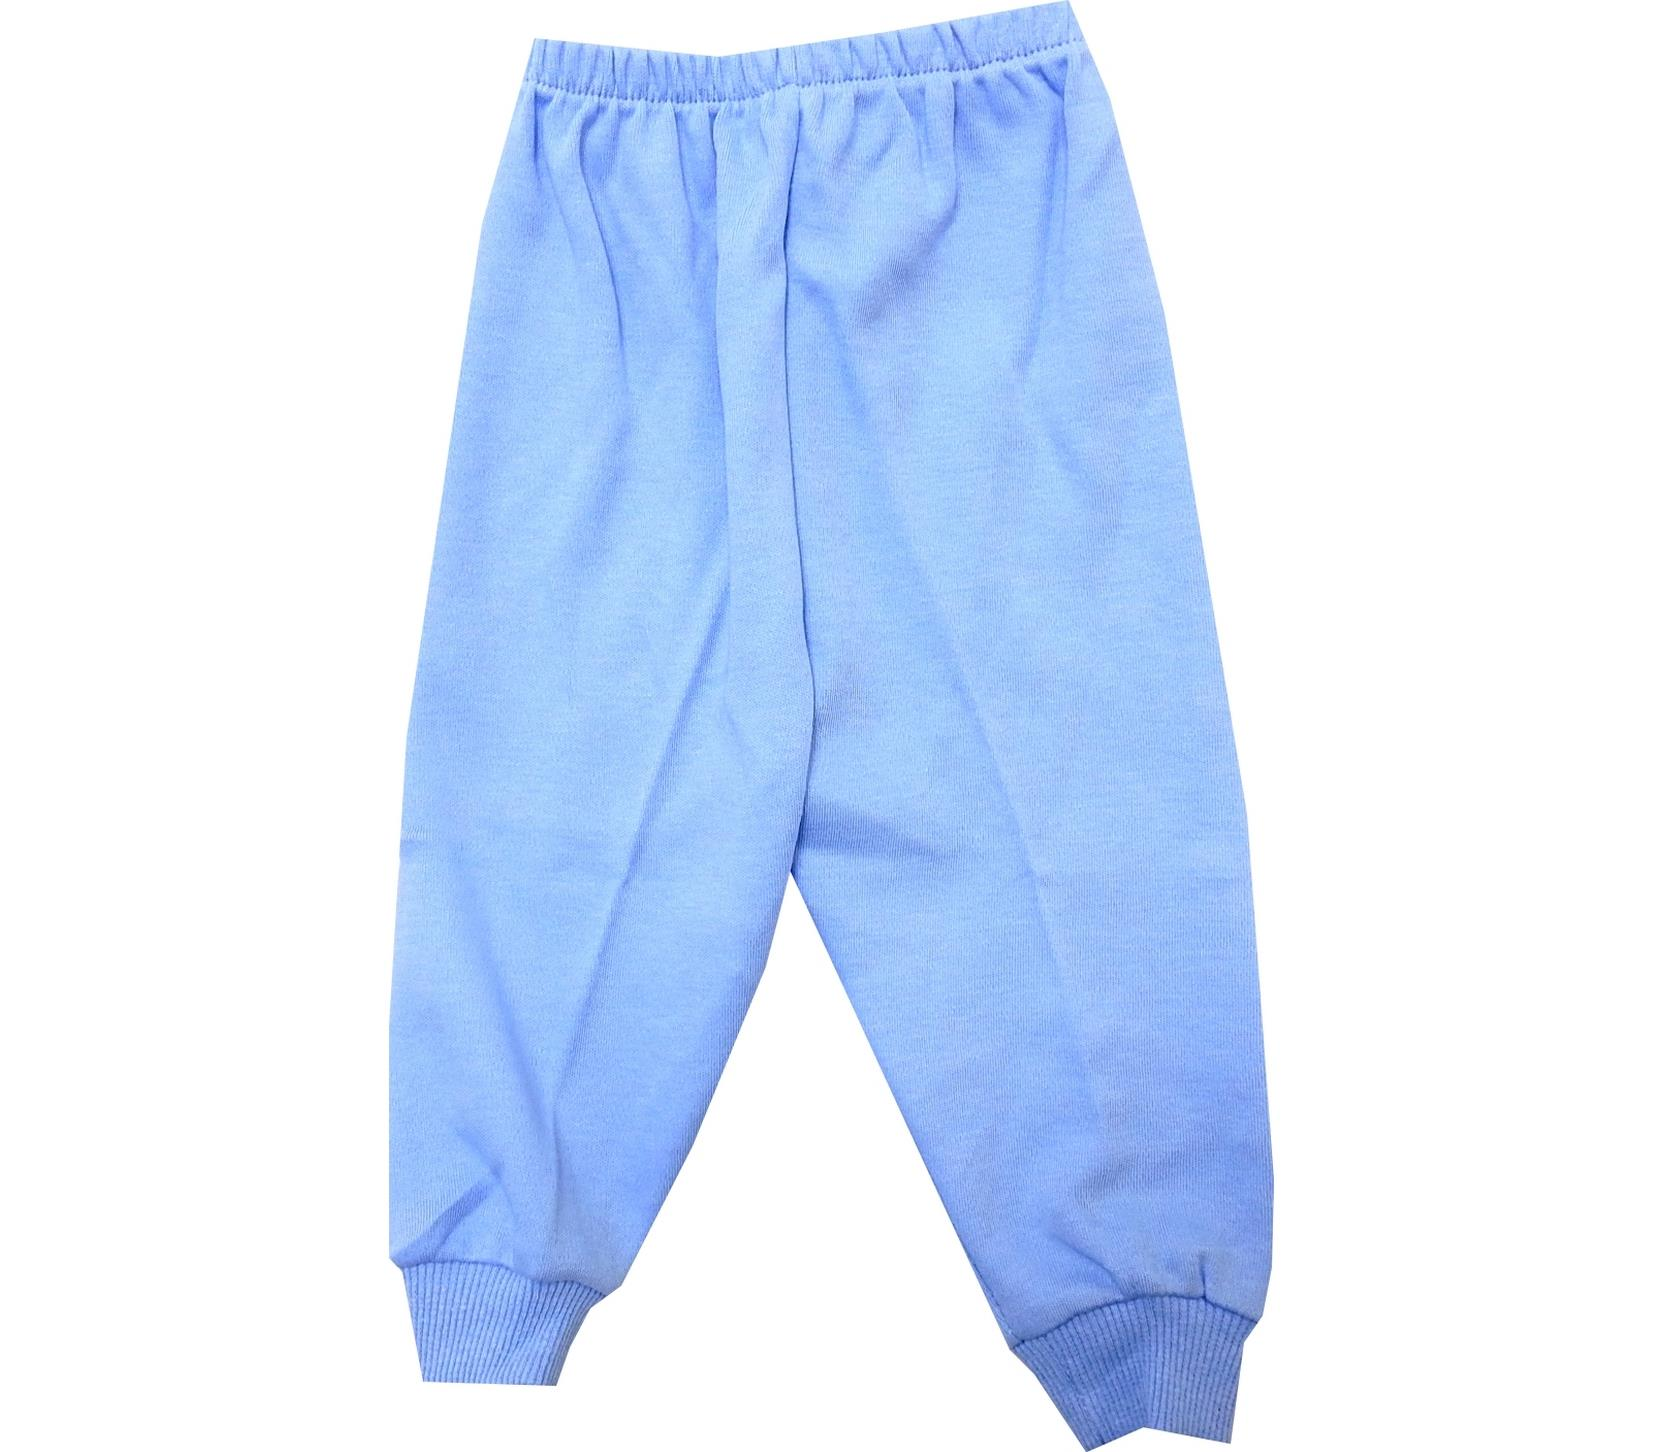 281 Wholesale quality and cheap track suits for babies